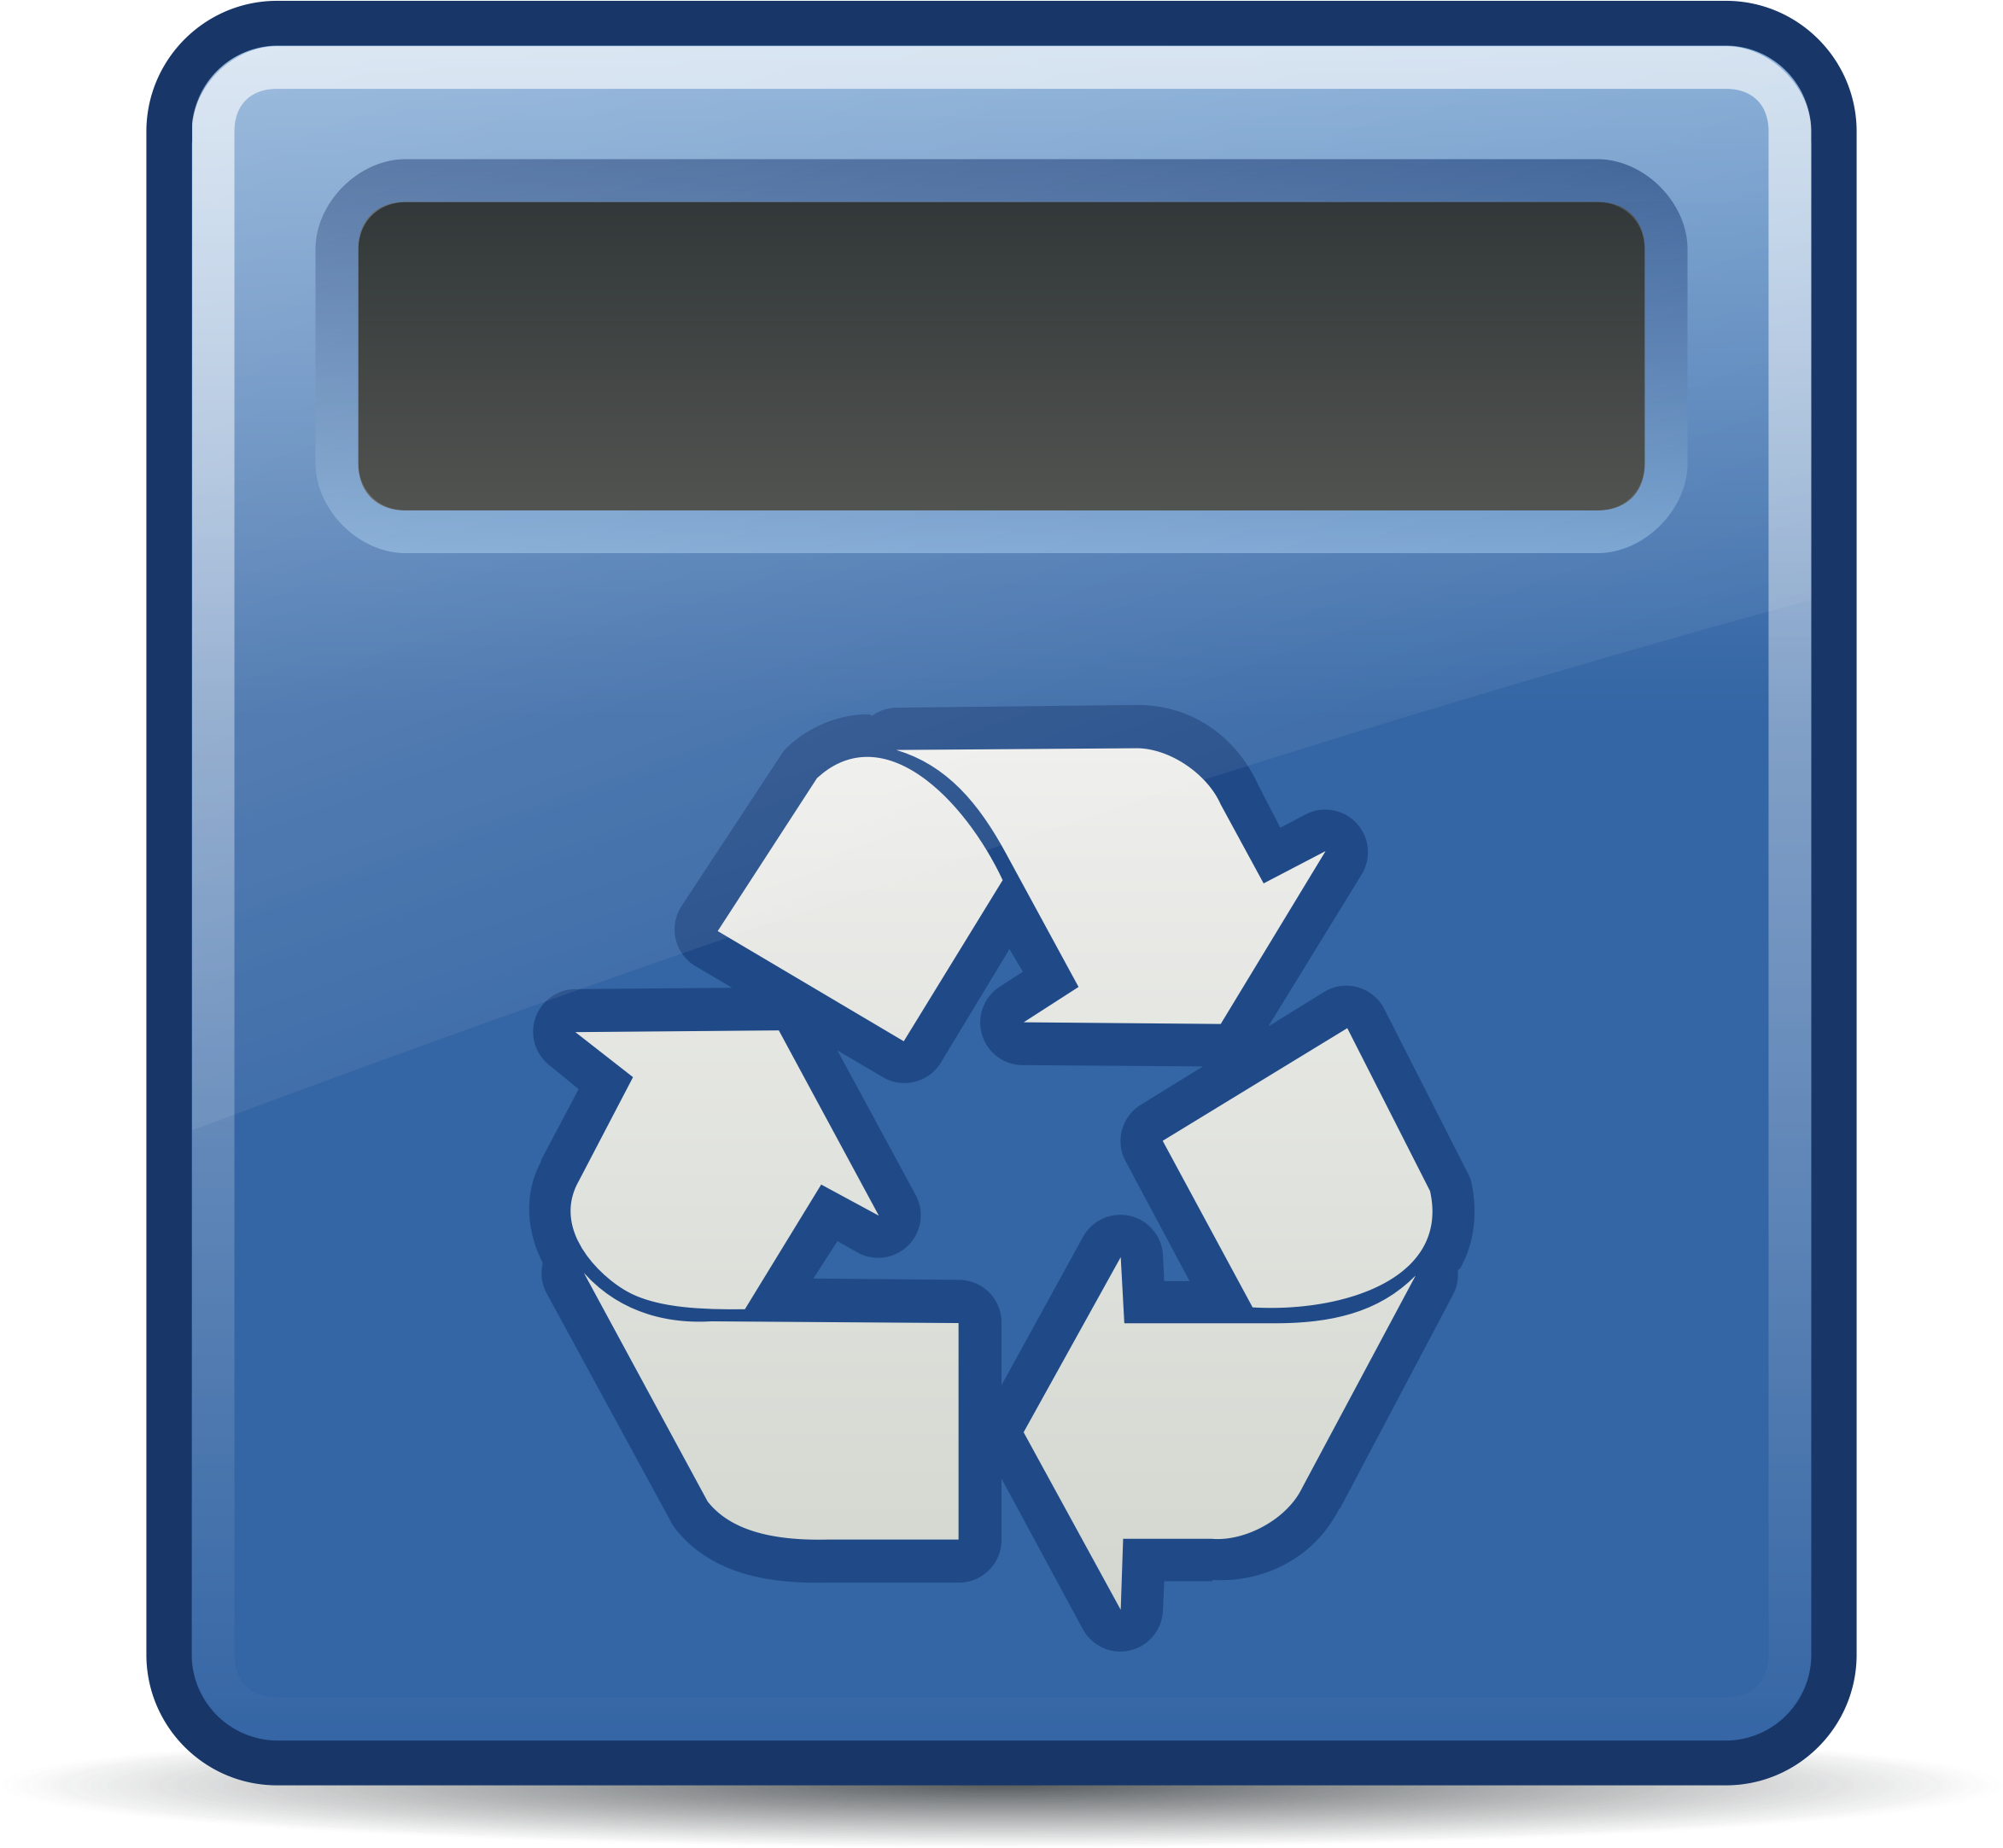 trash empty image icon png